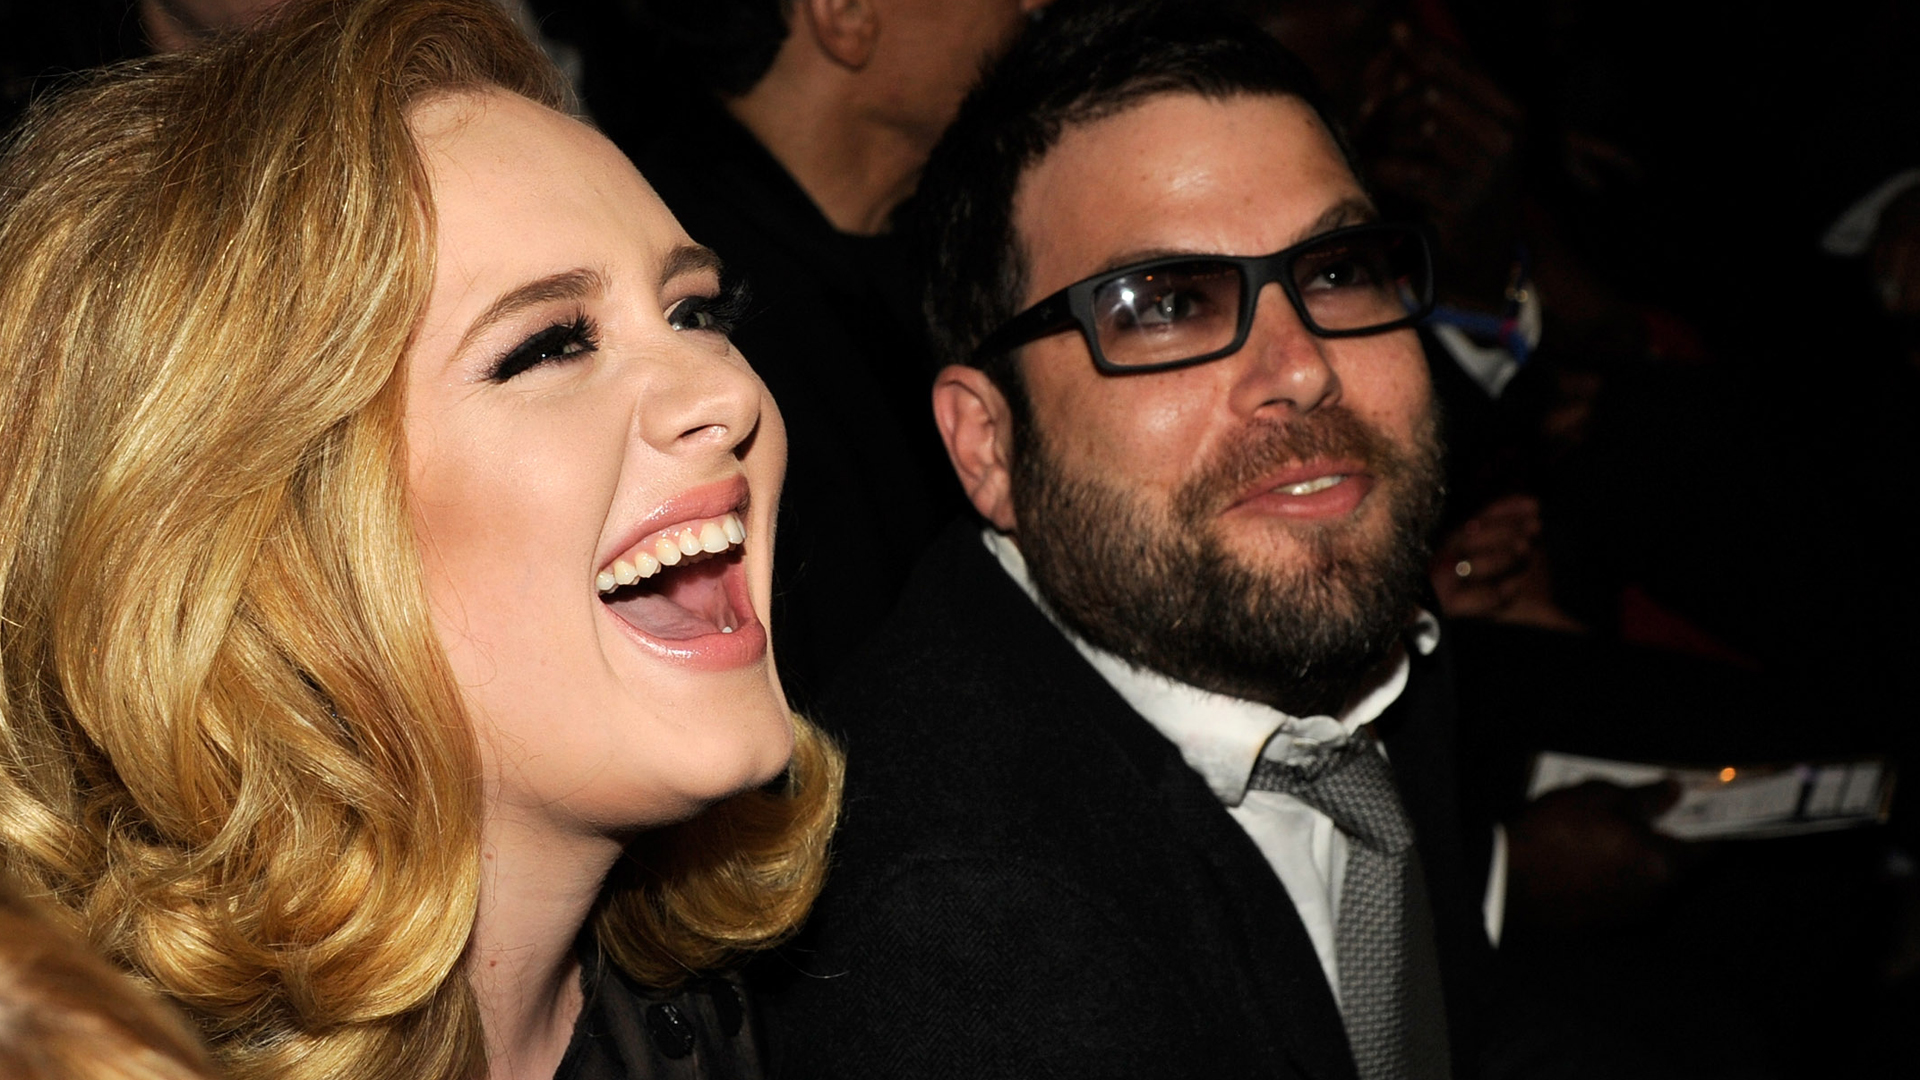 LOS ANGELES, CA - FEBRUARY 12:  Adele and Simon Konecki attend The 54th Annual GRAMMY Awards at Staples Center on February 12